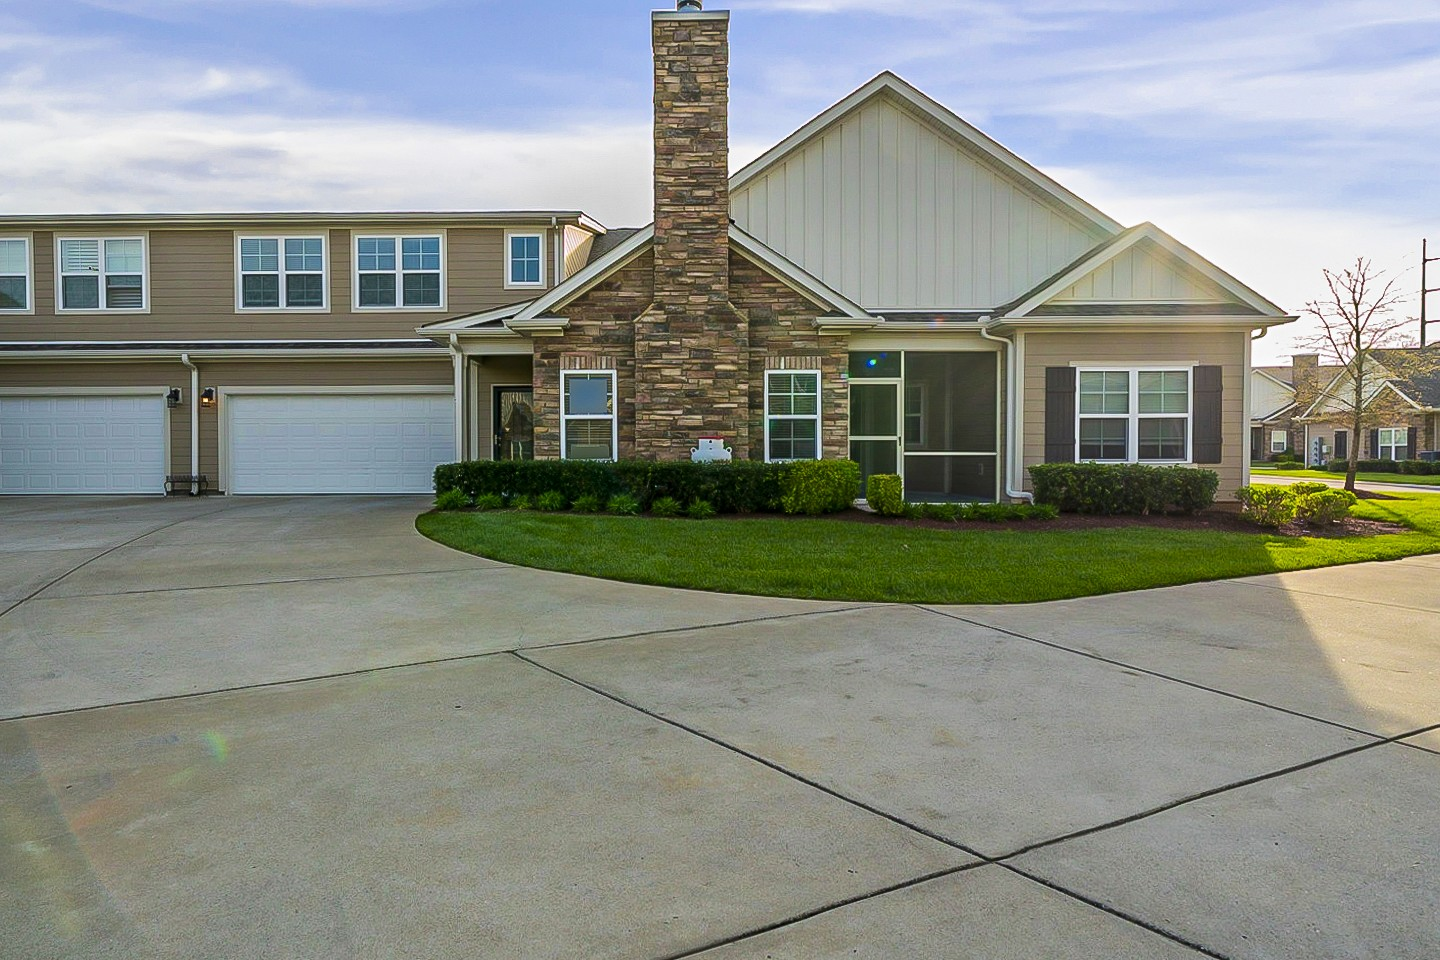 Built in 2016, this Murfreesboro two-story cul-de-sac home offers granite countertops, and a two-car garage.